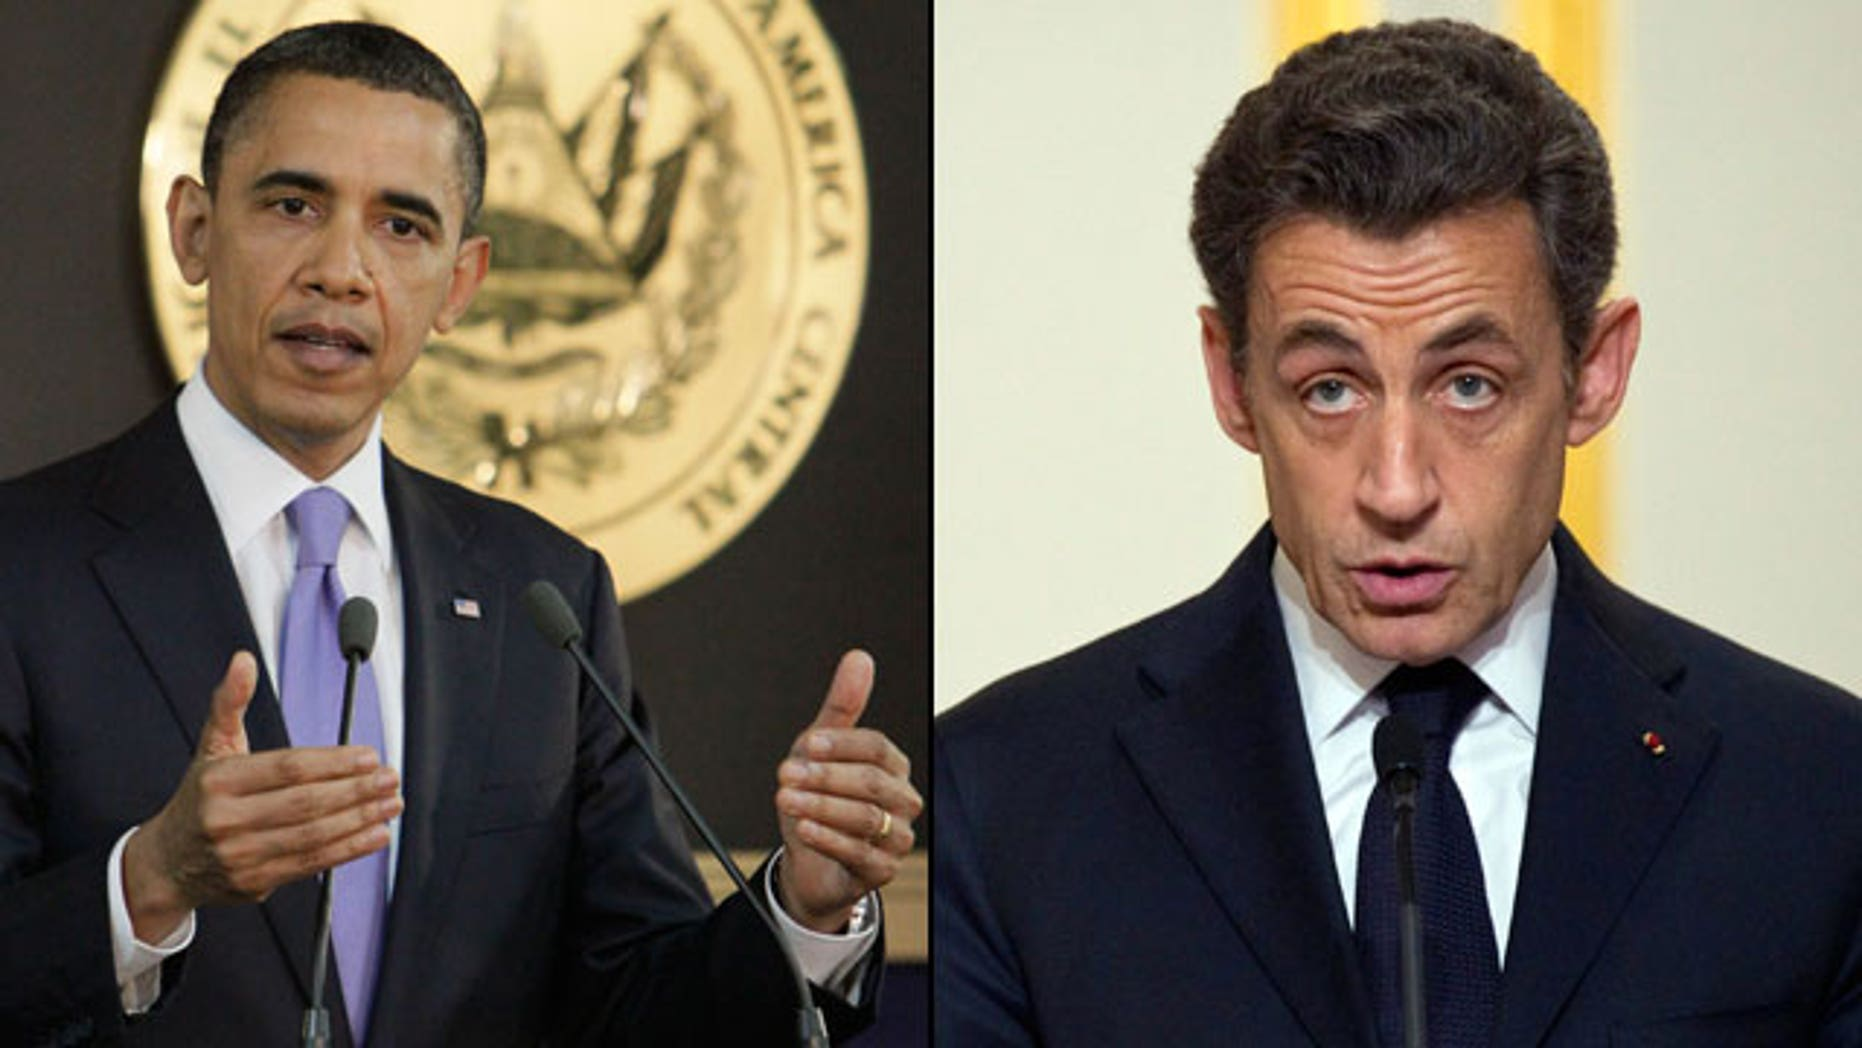 U.S. President Obama and French President Nicolas Sarkozy. (AP)